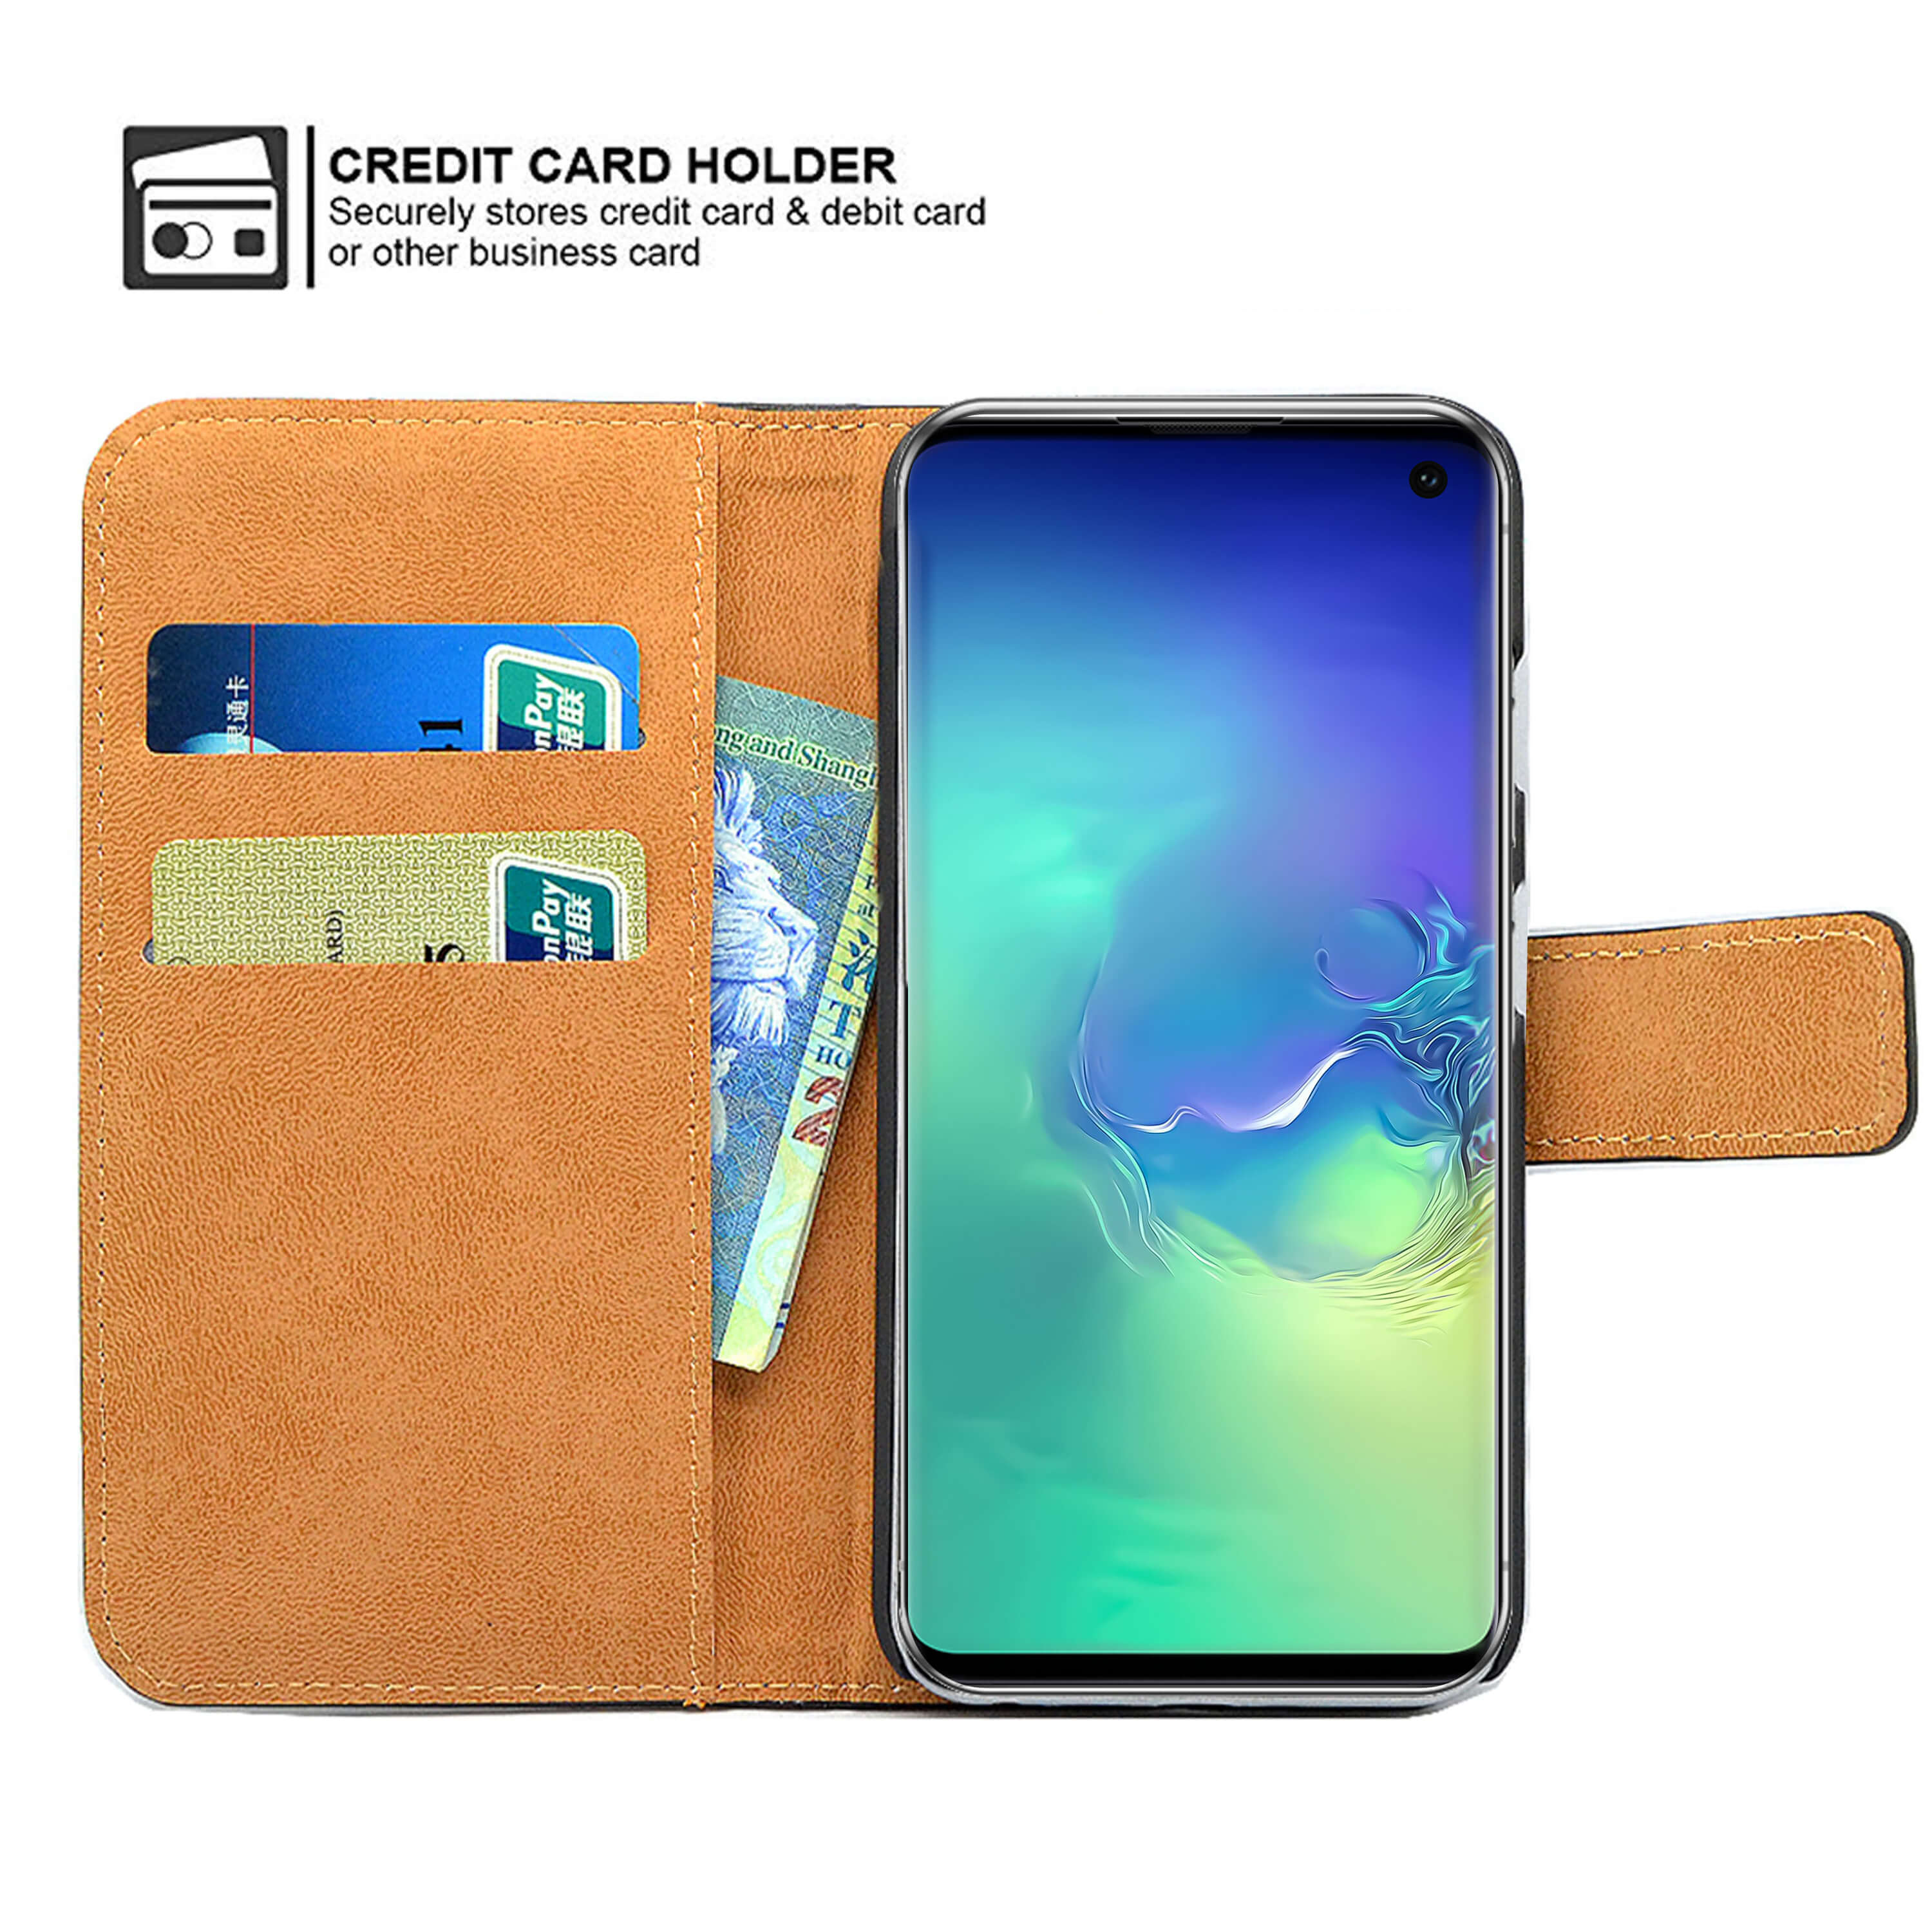 Leather-Flip-Wallet-Magnetic-Case-Cover-For-Samsung-Galaxy-S10-Plus-S9-S8-A50 thumbnail 14